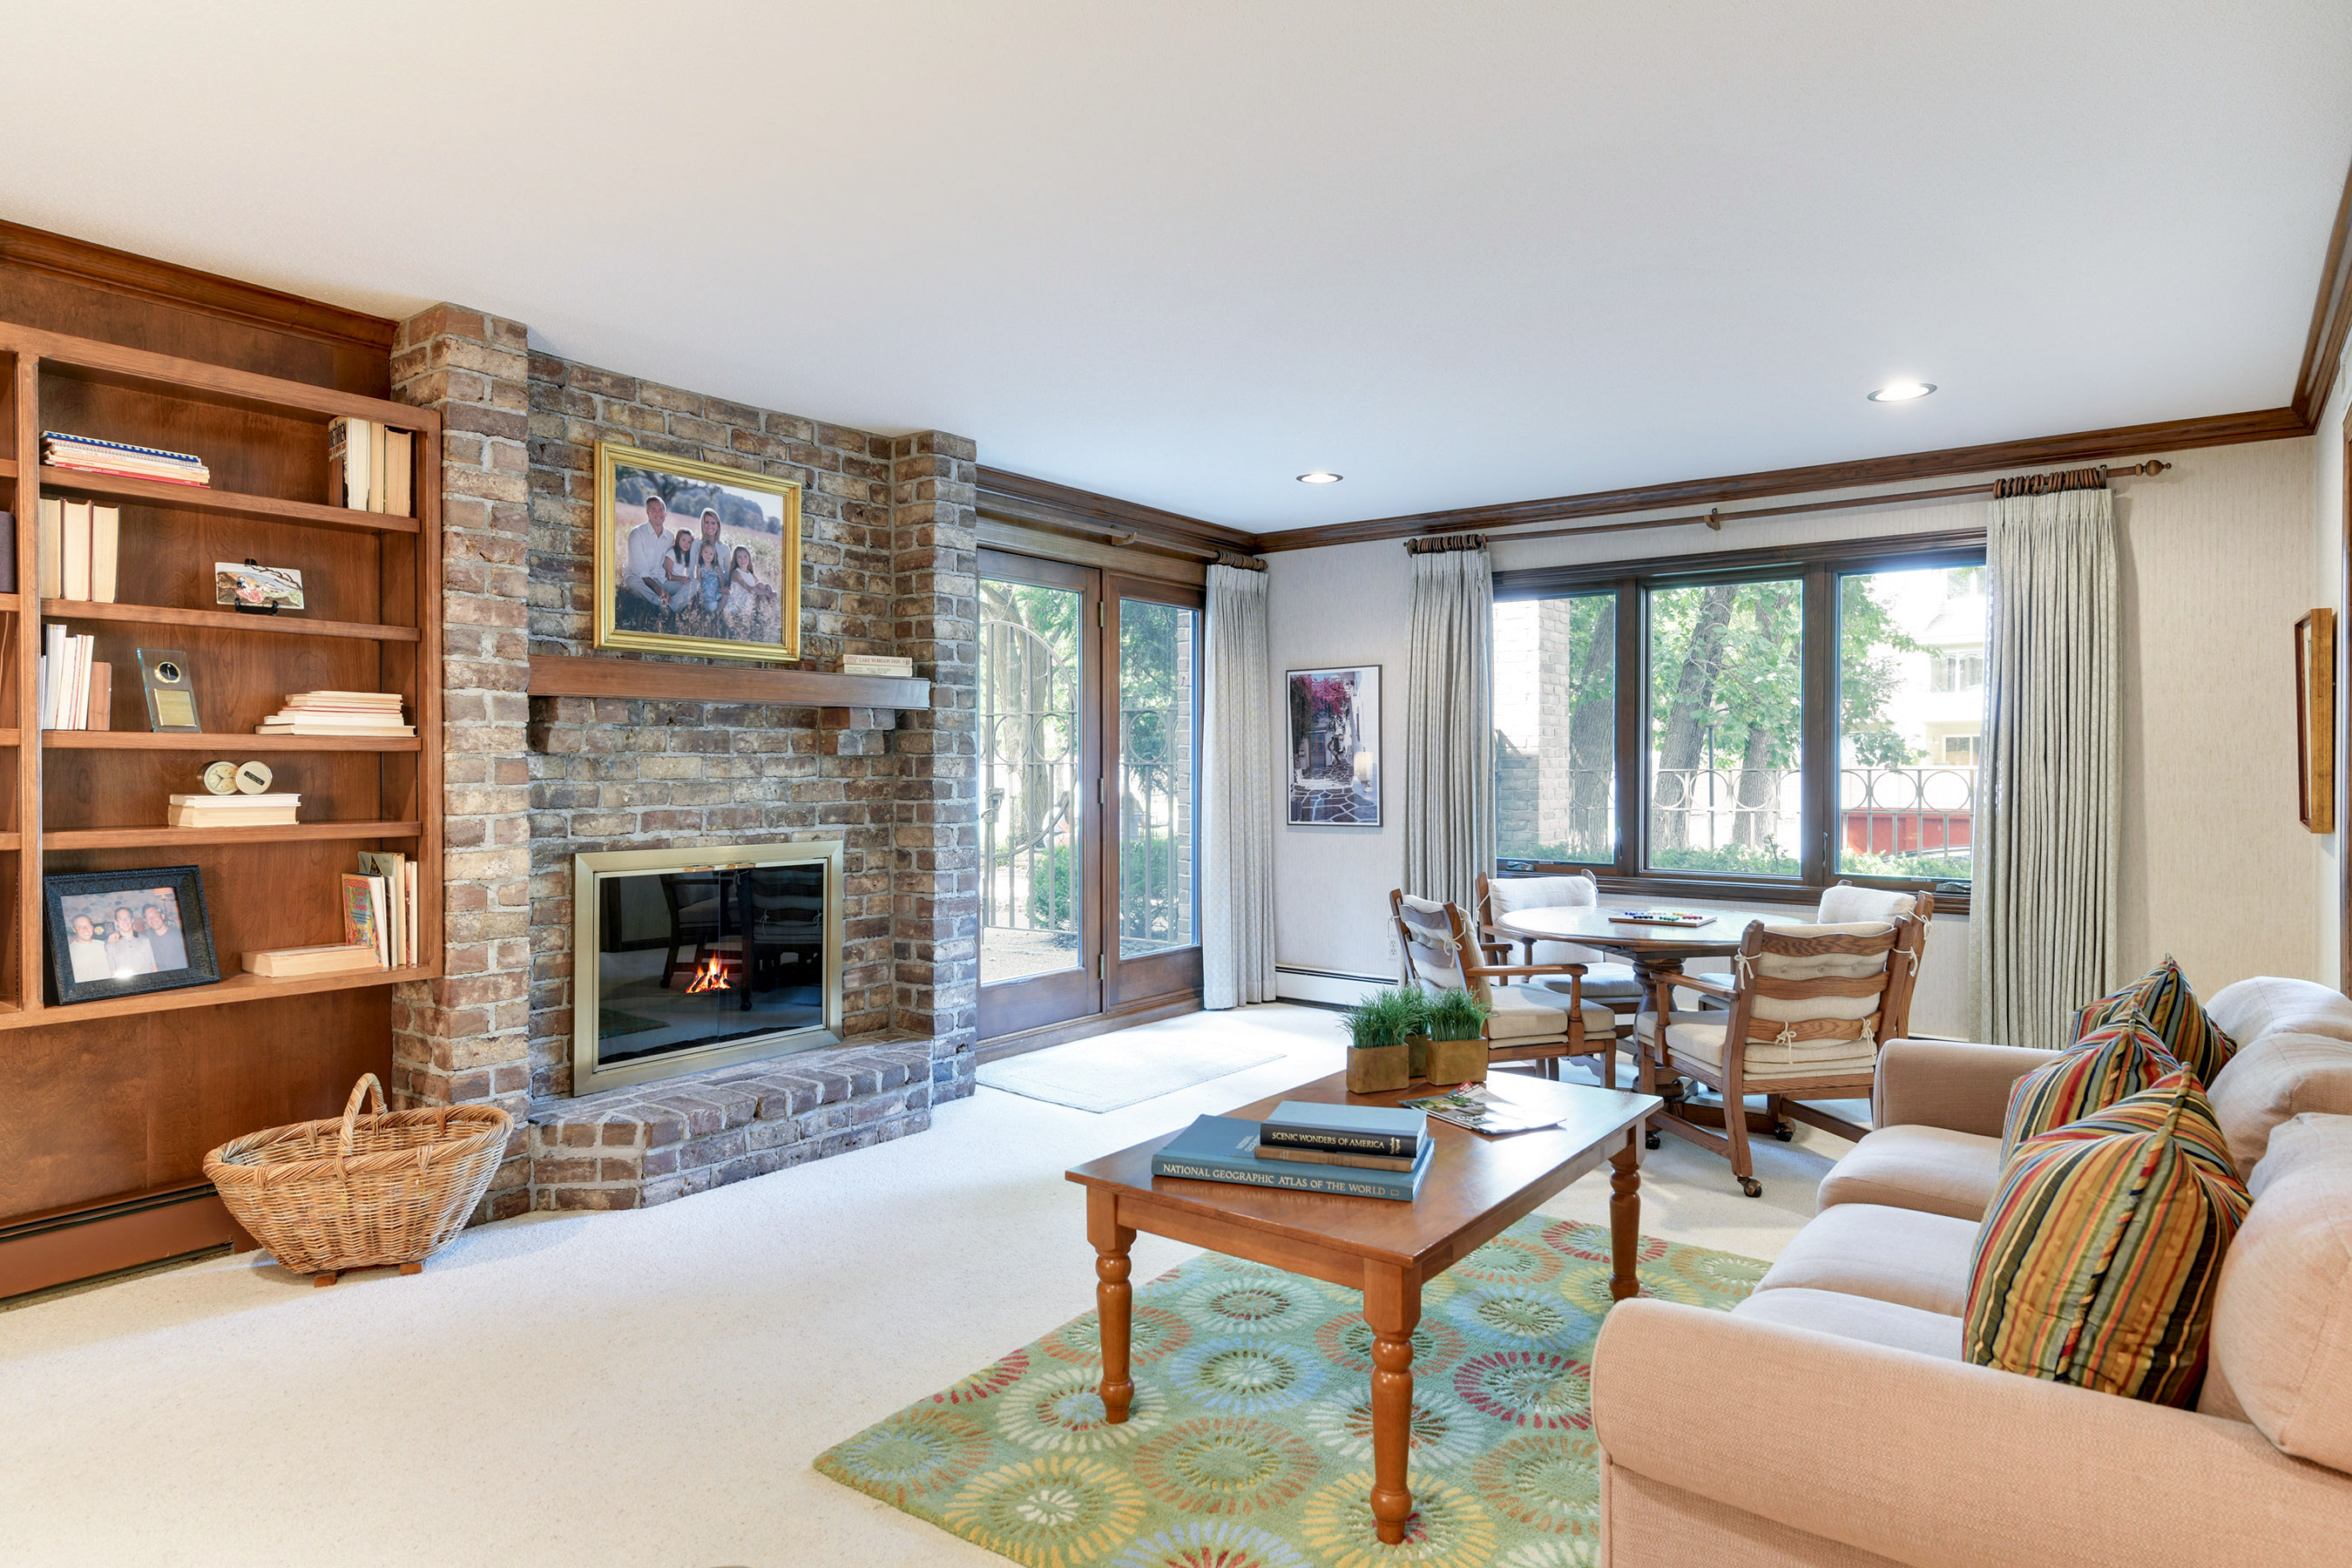 Main floor family room is a great place for daily living featuring a brick gas log fireplace, a built-in bar and a terrace door to the patio.